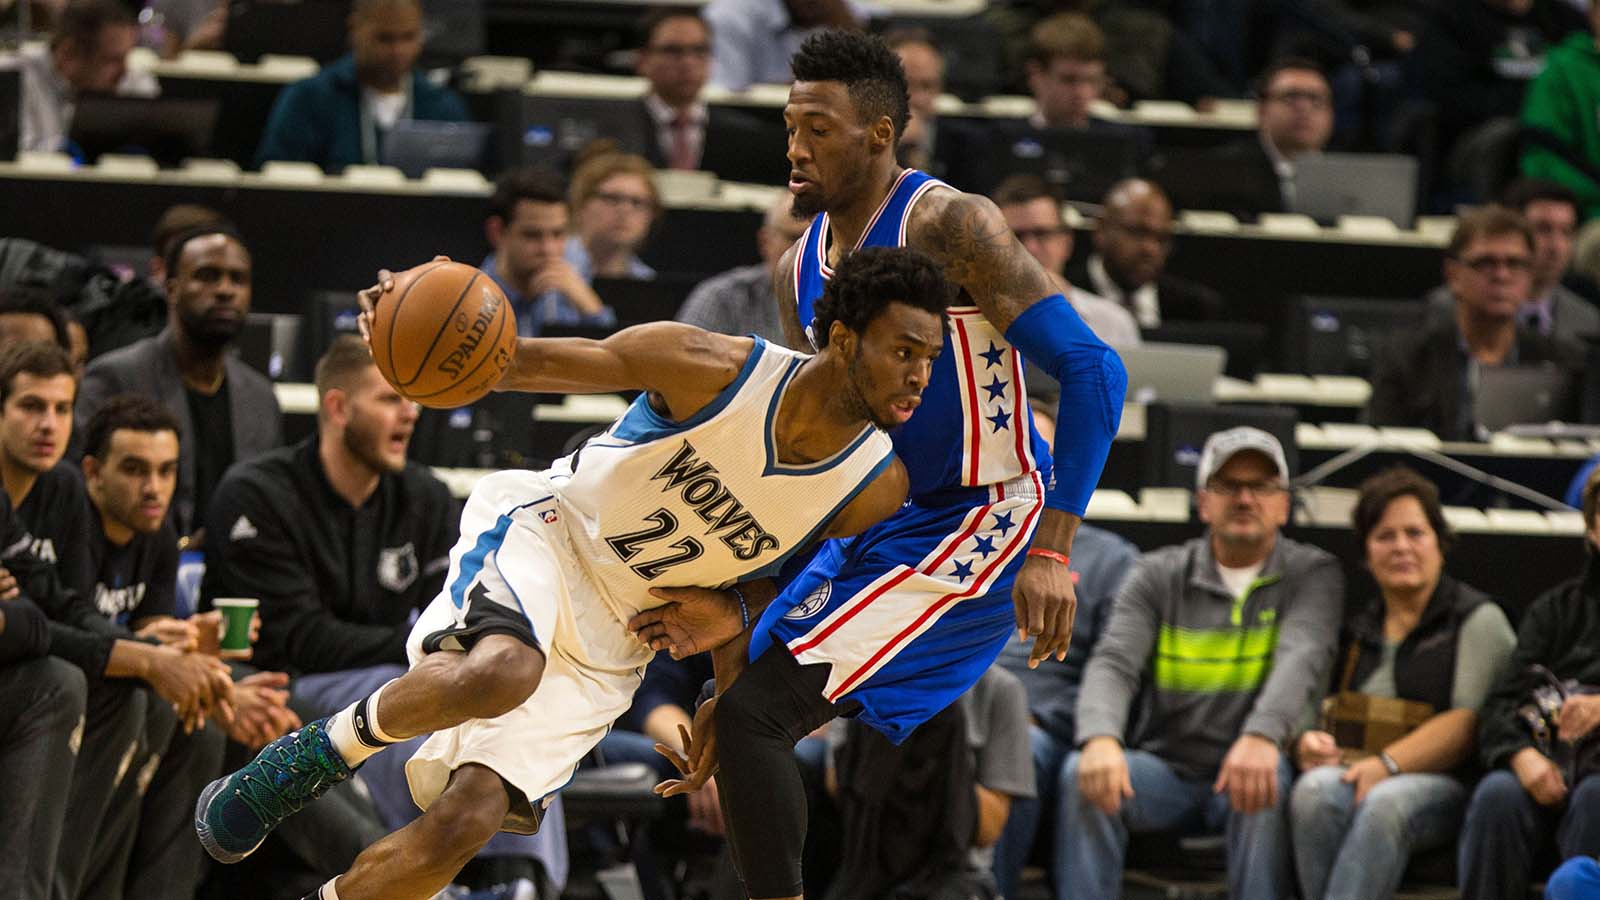 Wolves' Wiggins does it again in 110-86 win over 76ers